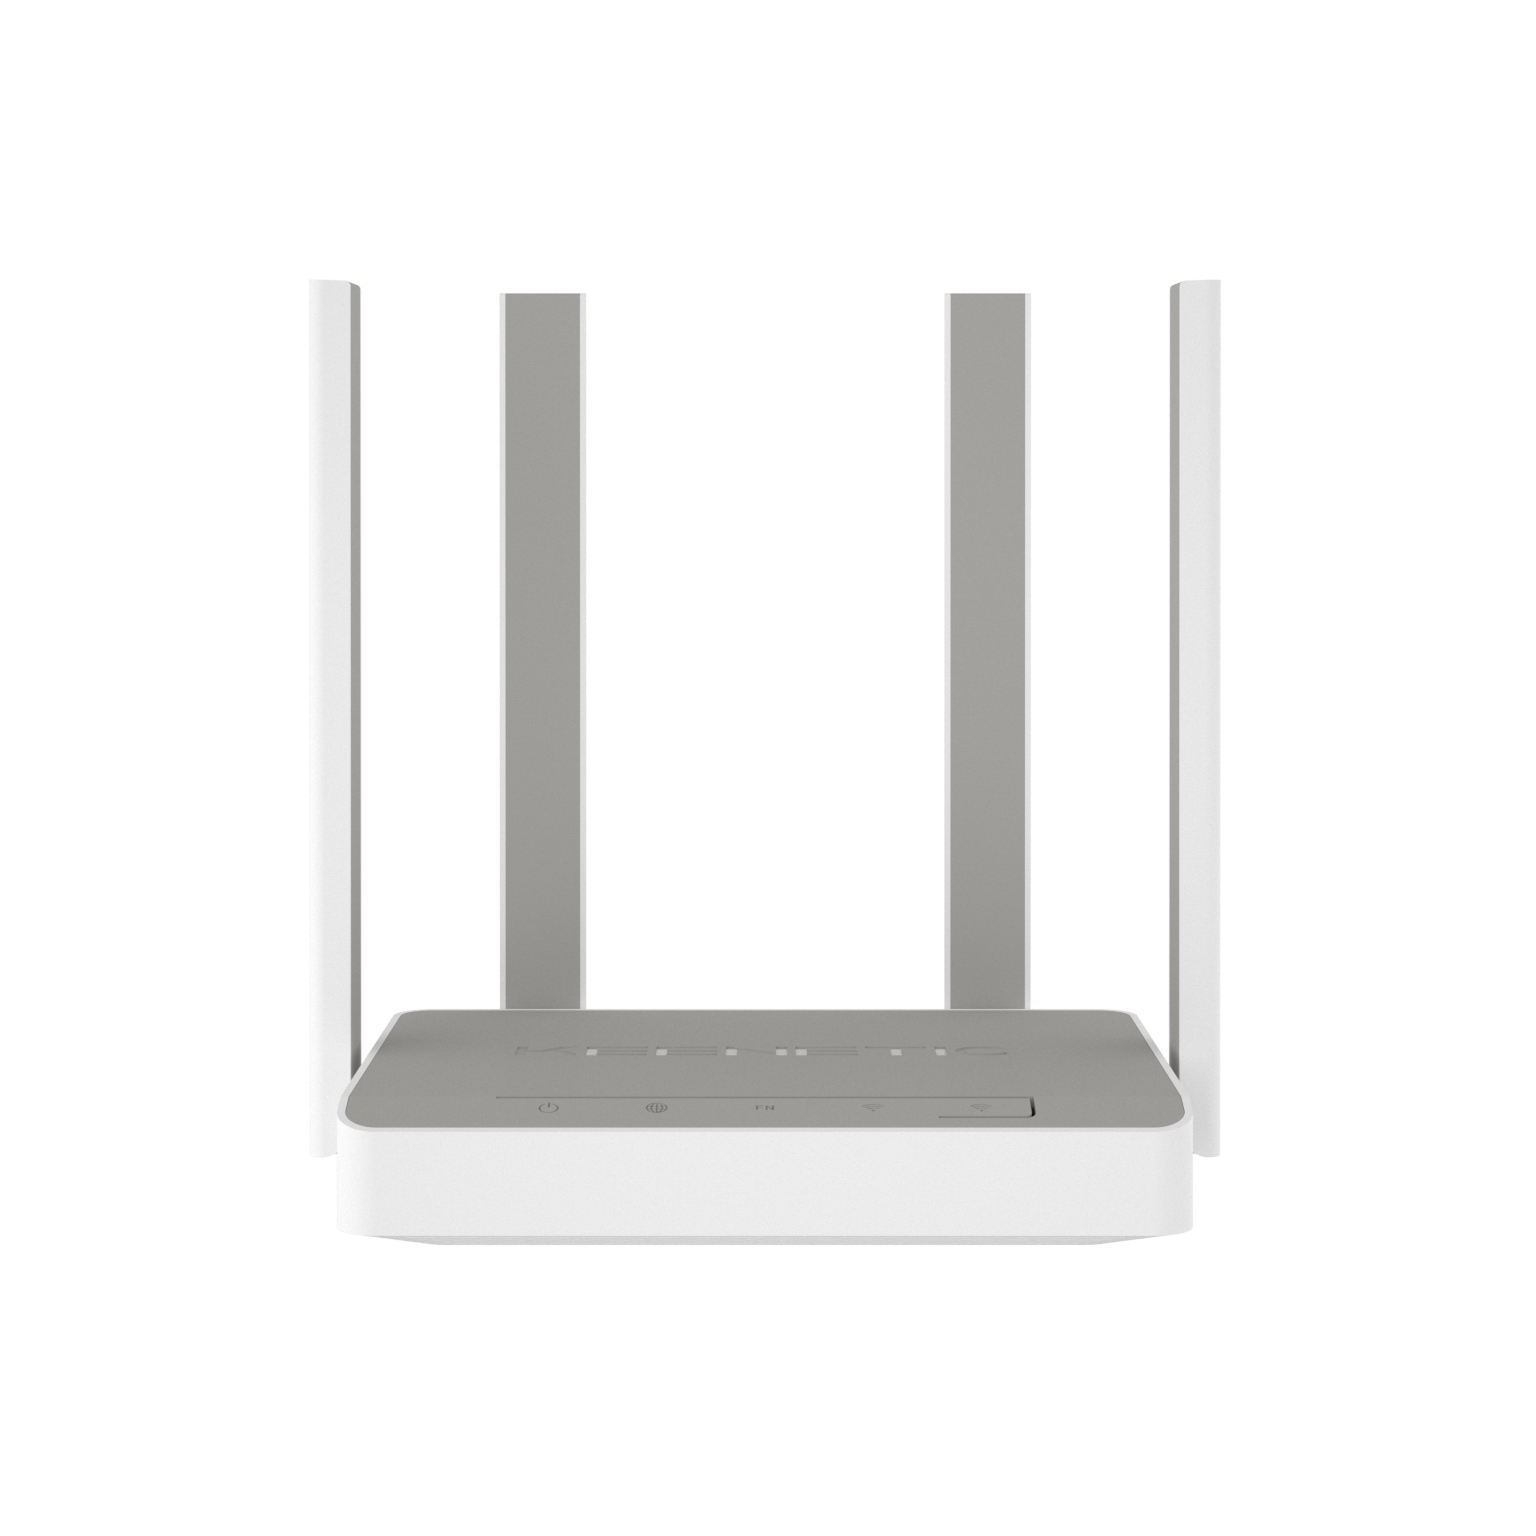 KEENETIC AIR KN-1610-01TR 1200mbps AC1200 Mesafe Genişletici EV Ofis Tipi Access Point Router